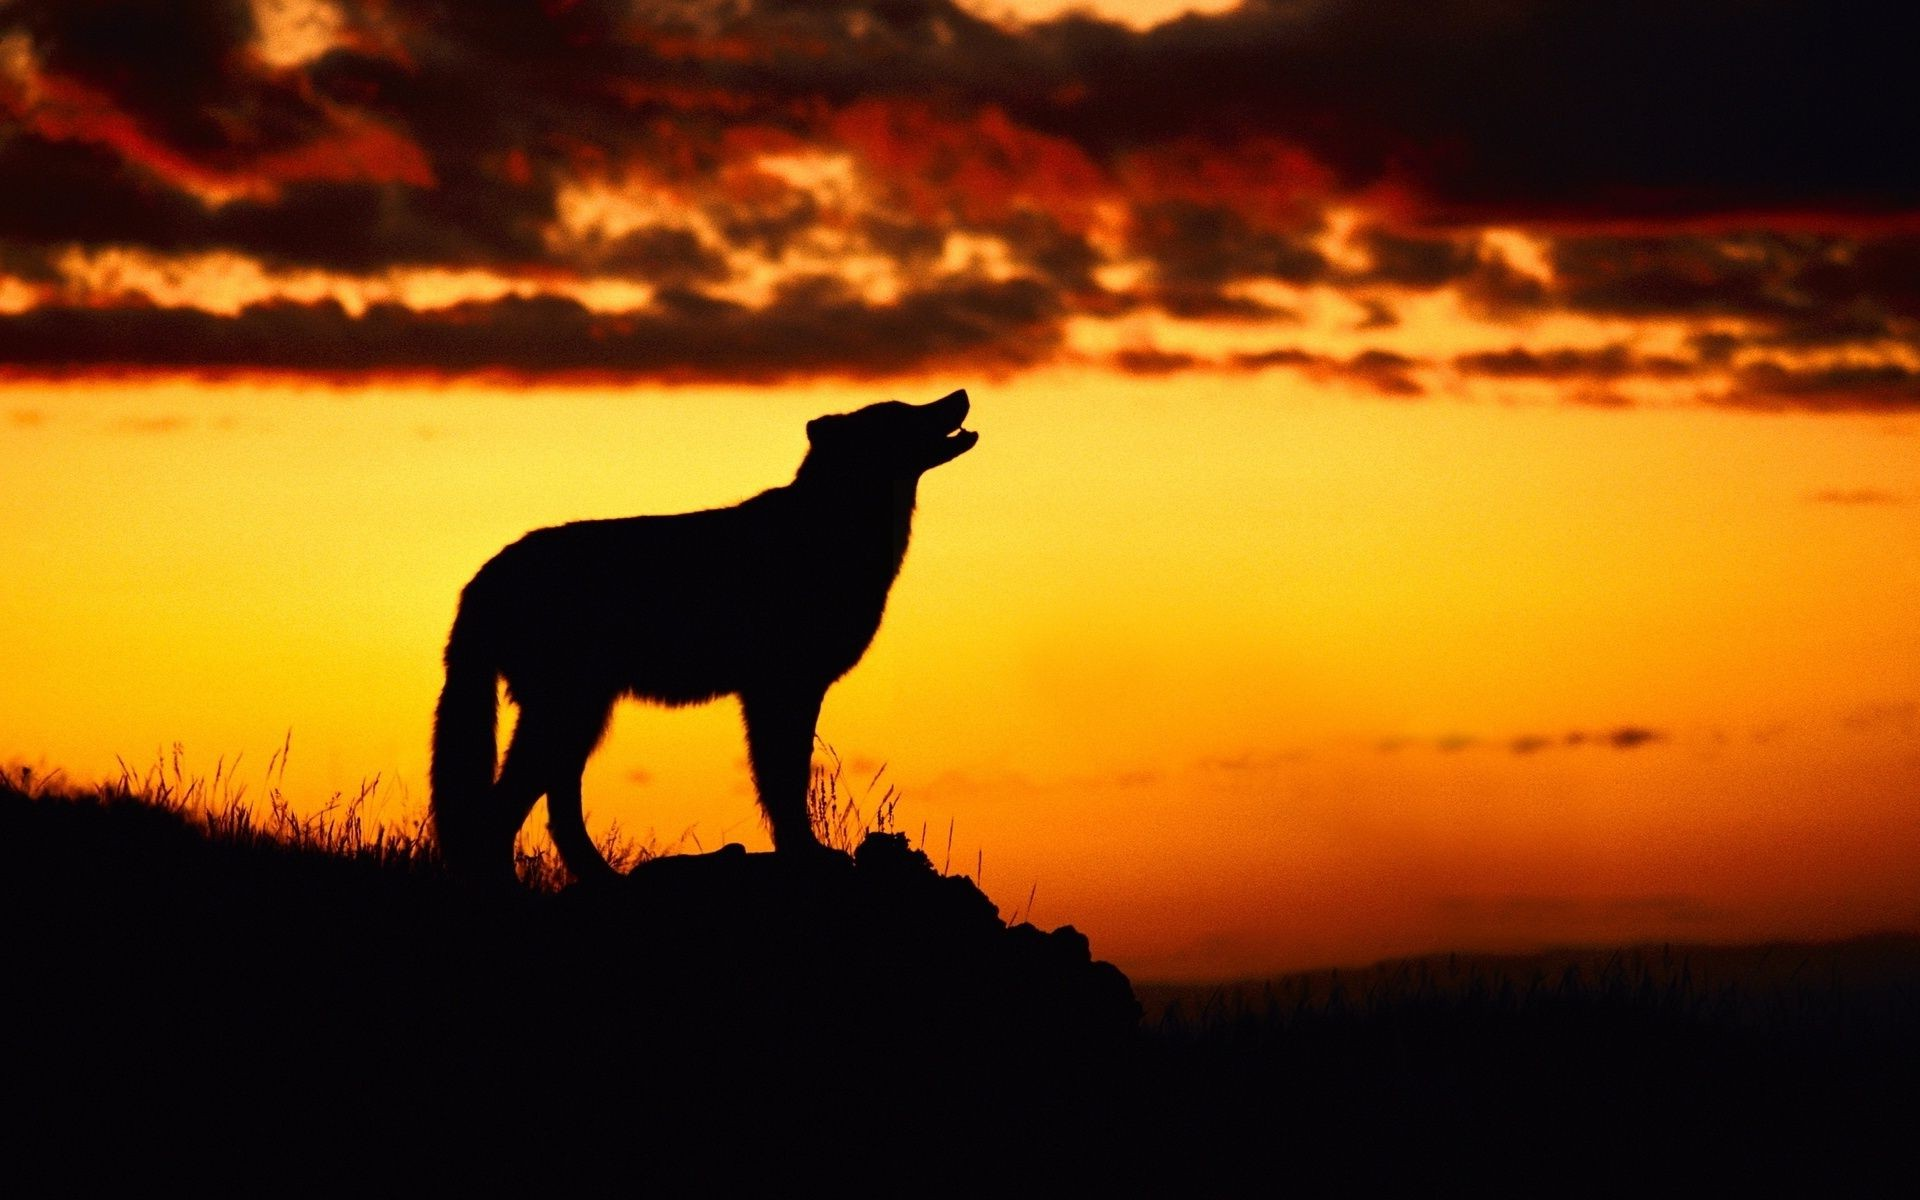 wolf howling at the moon at sunset